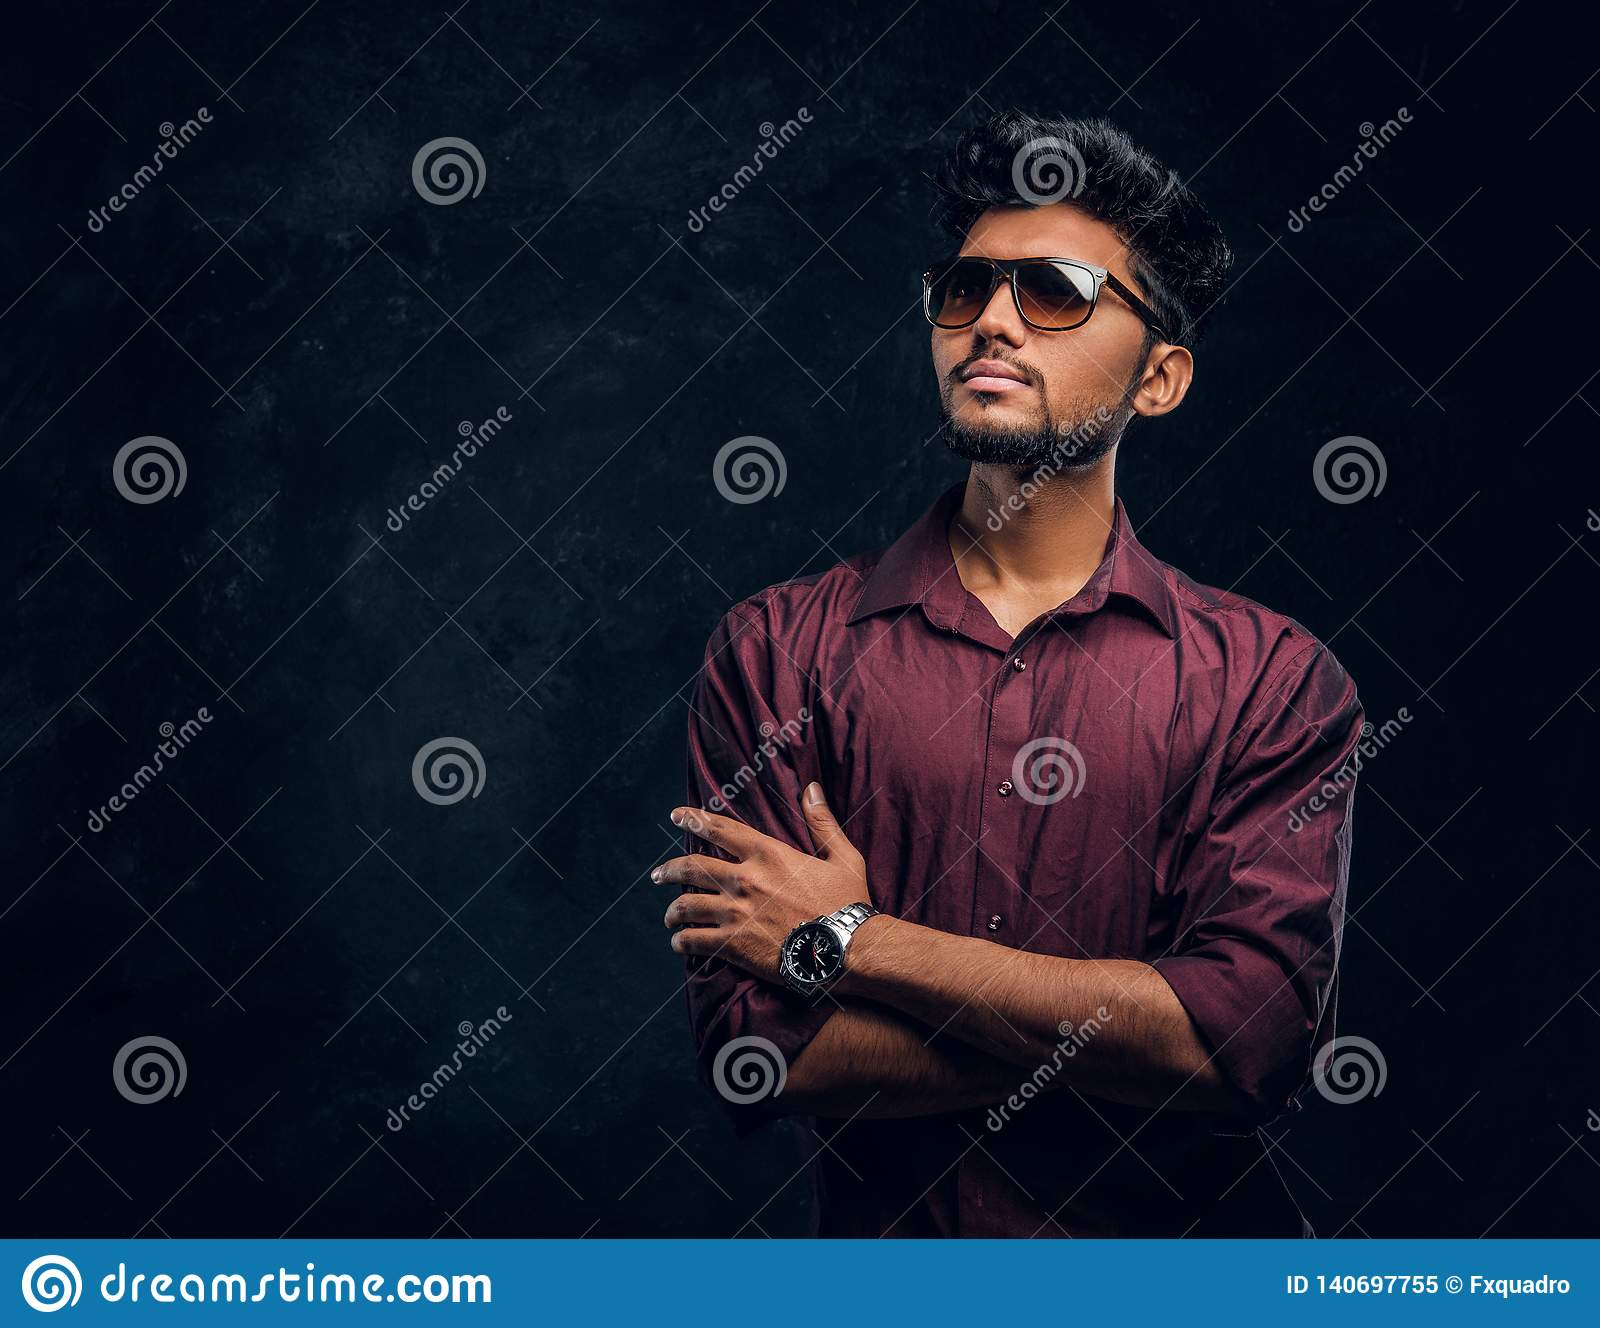 Vogue, fashion, style. Handsome young Indian guy wearing a stylish shirt and sunglasses posing with crossed arms.